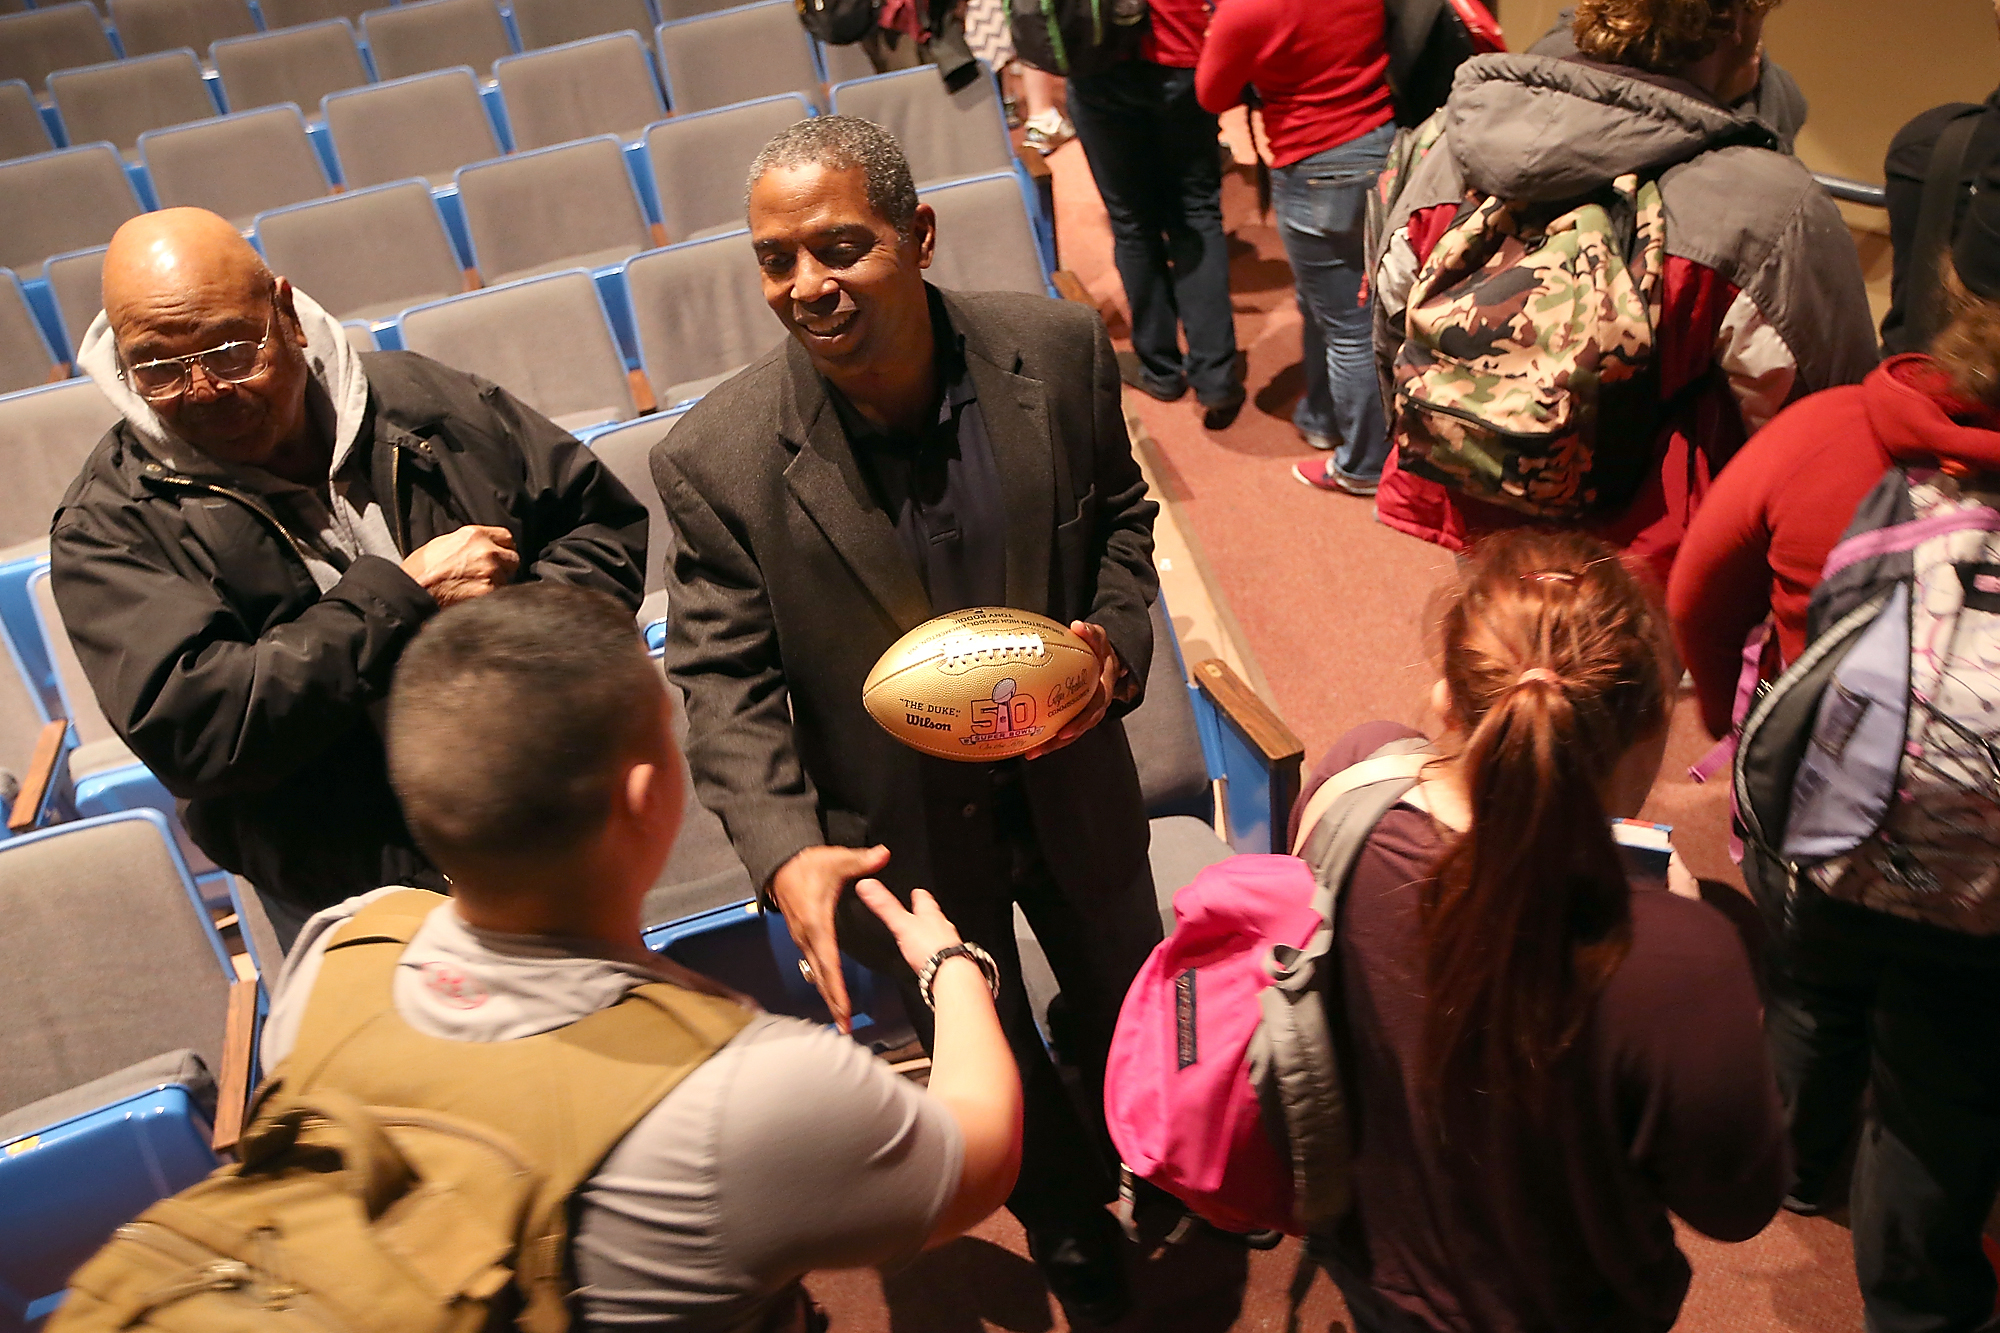 Bremerton High Alumni Tony Boddie shakes hands with students while holding a gold football commemorating his trip to the Super Bowl with the Denver Broncos that was presented to him during an assembley at the school on Friday, February 5, 2016. (MEEGAN M. REID / KITSAP SUN)